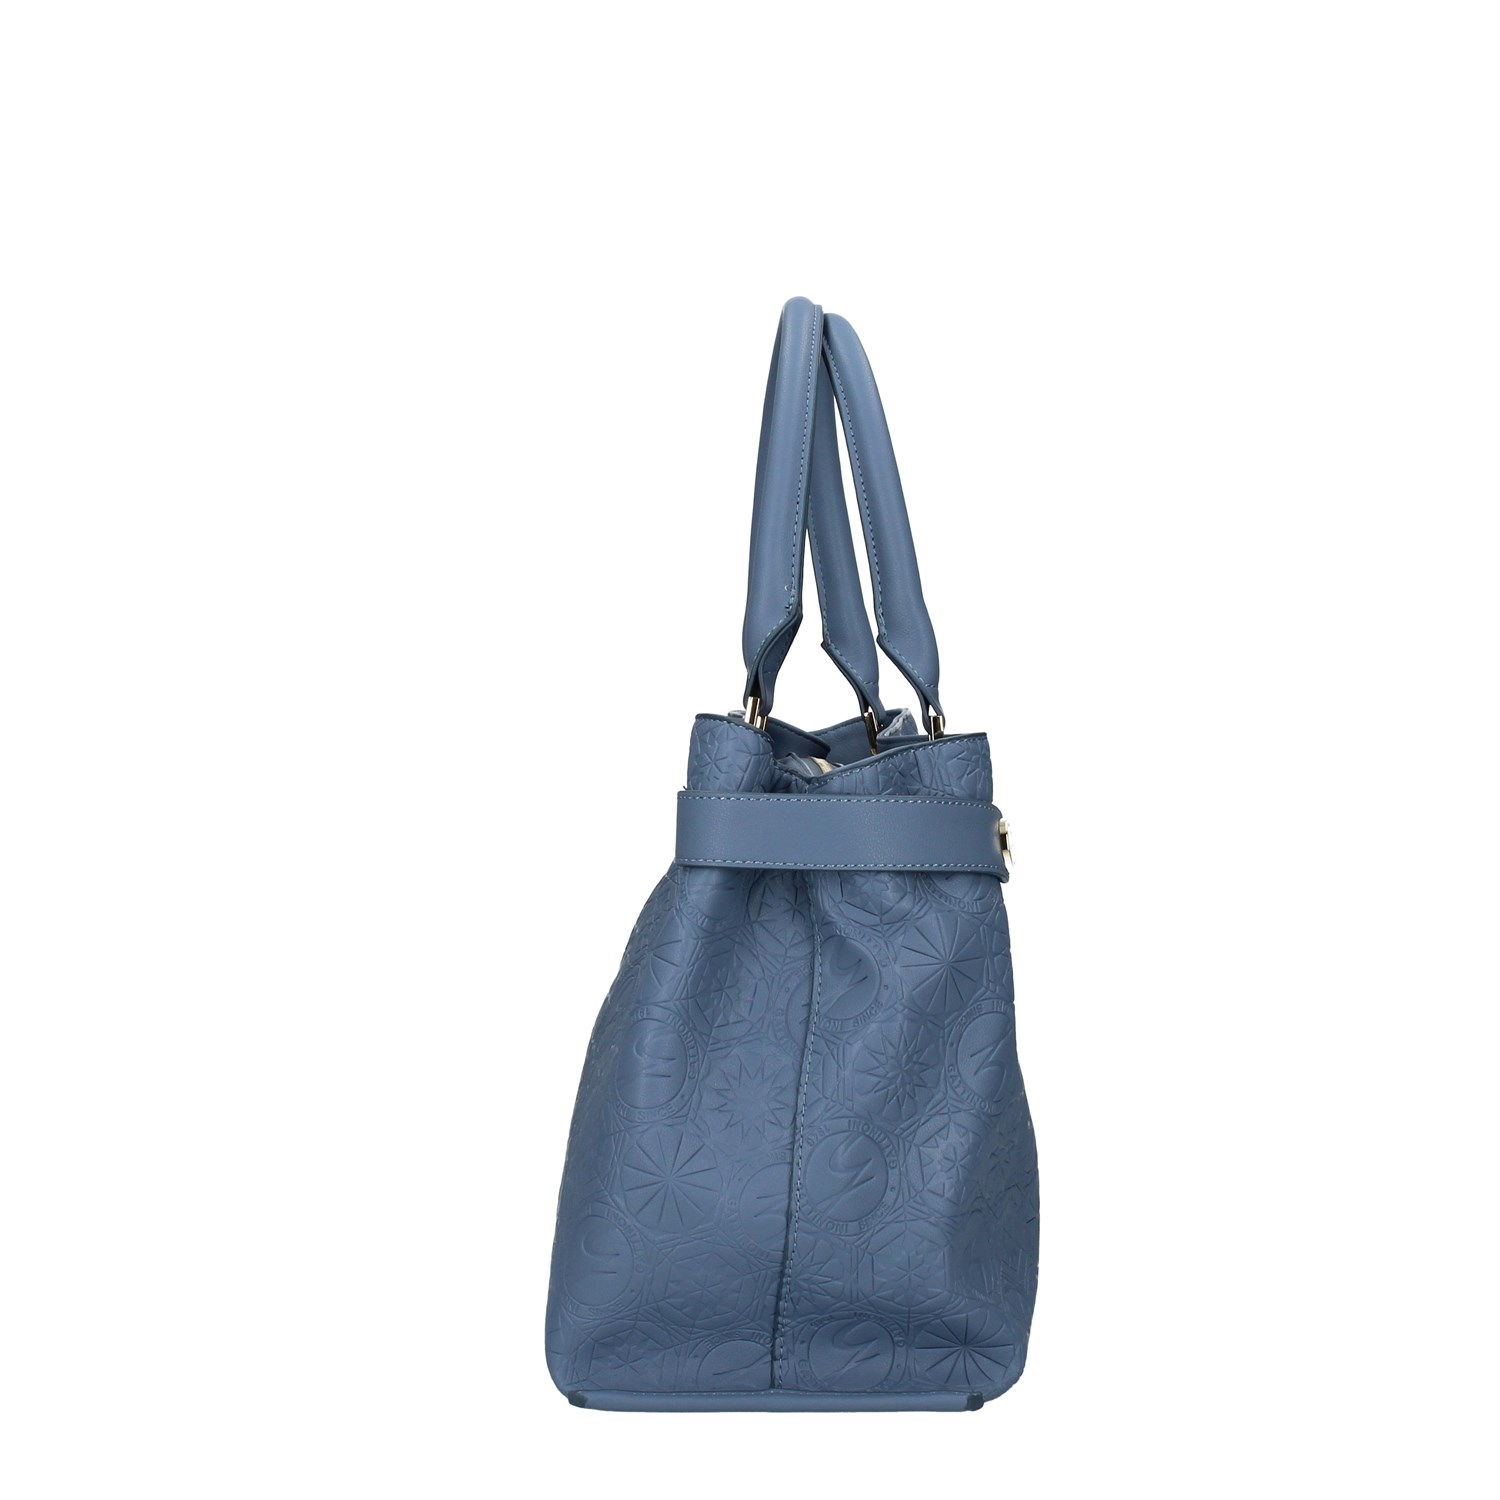 Gattinoni Roma Bags Accessories By hand BLUE BENJD6480WV